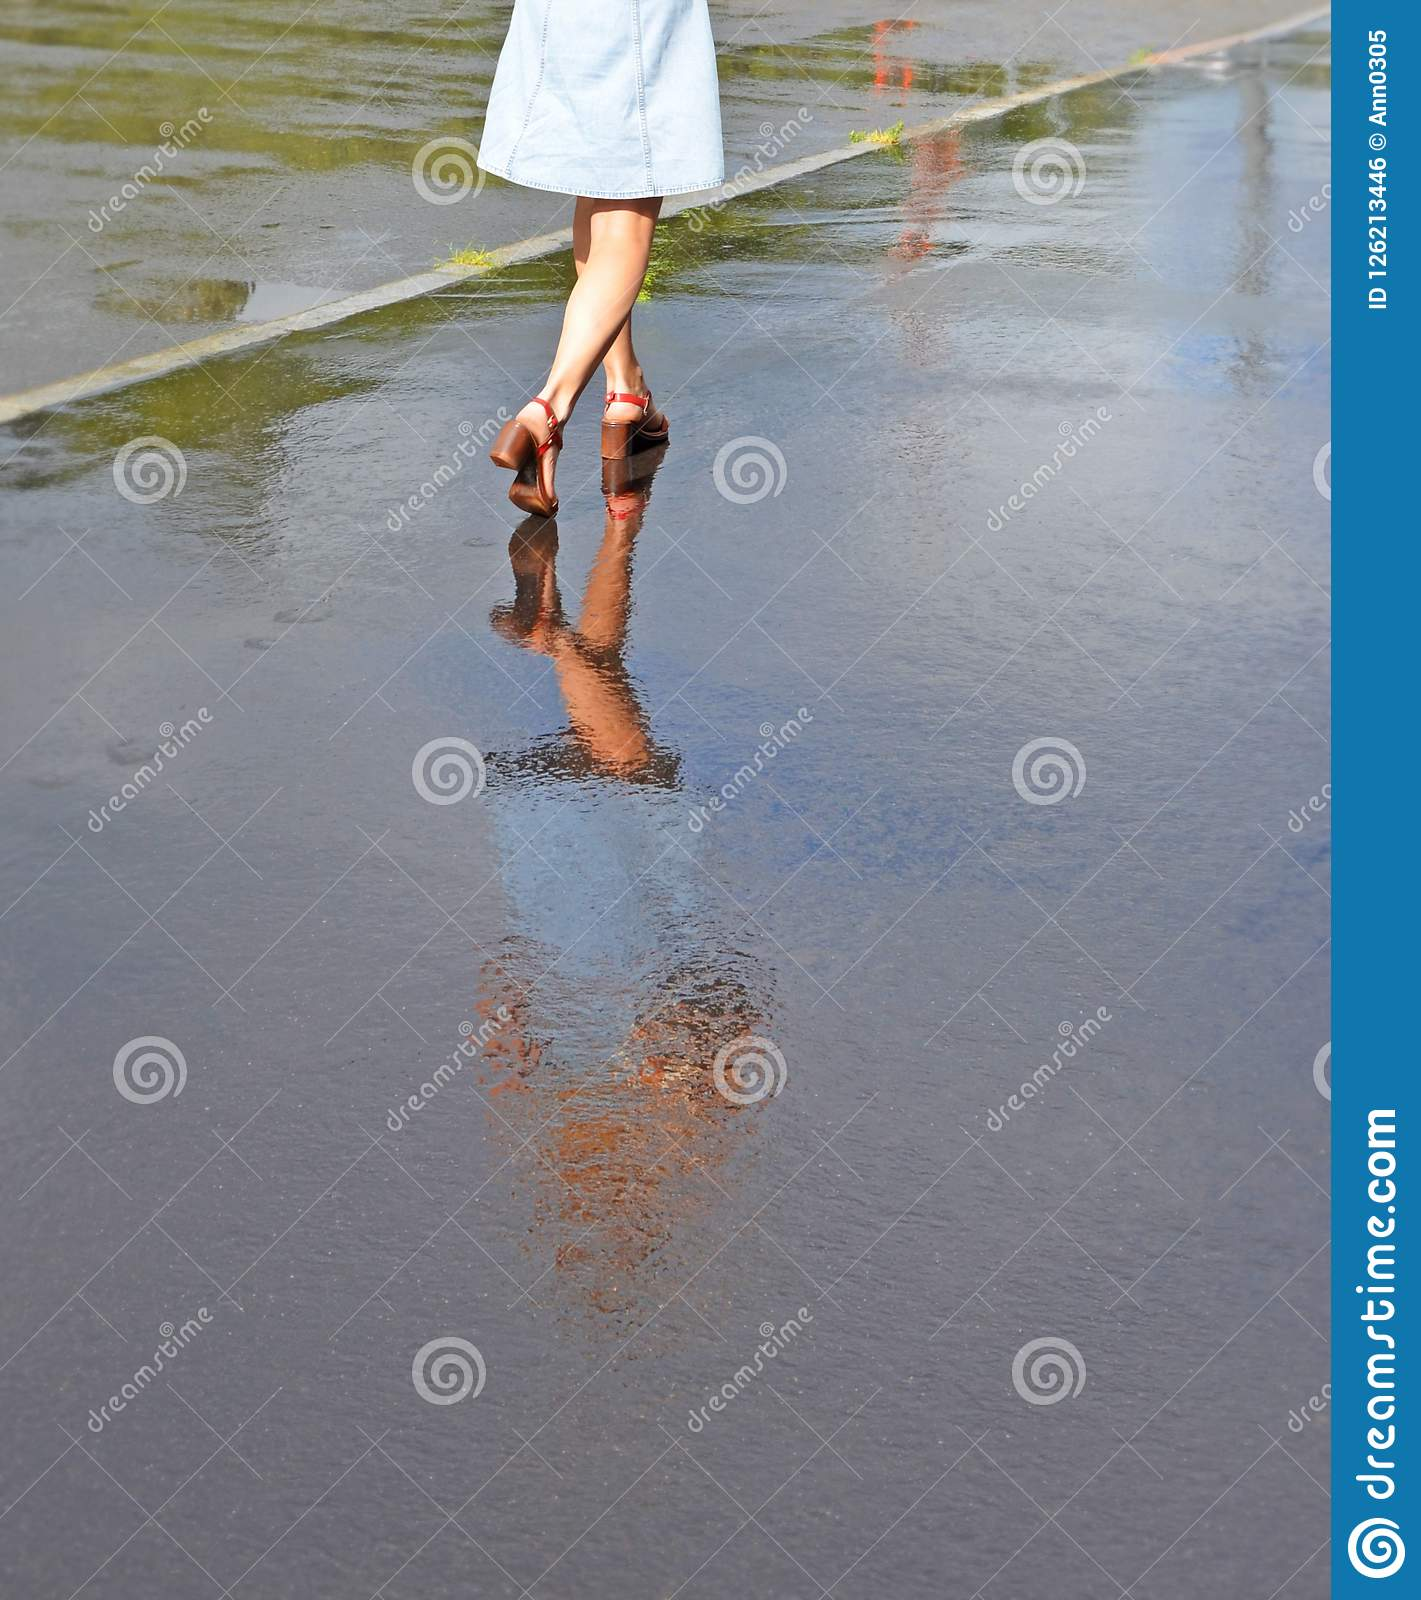 Feet of the girl and her reflection in water on the sidewalk